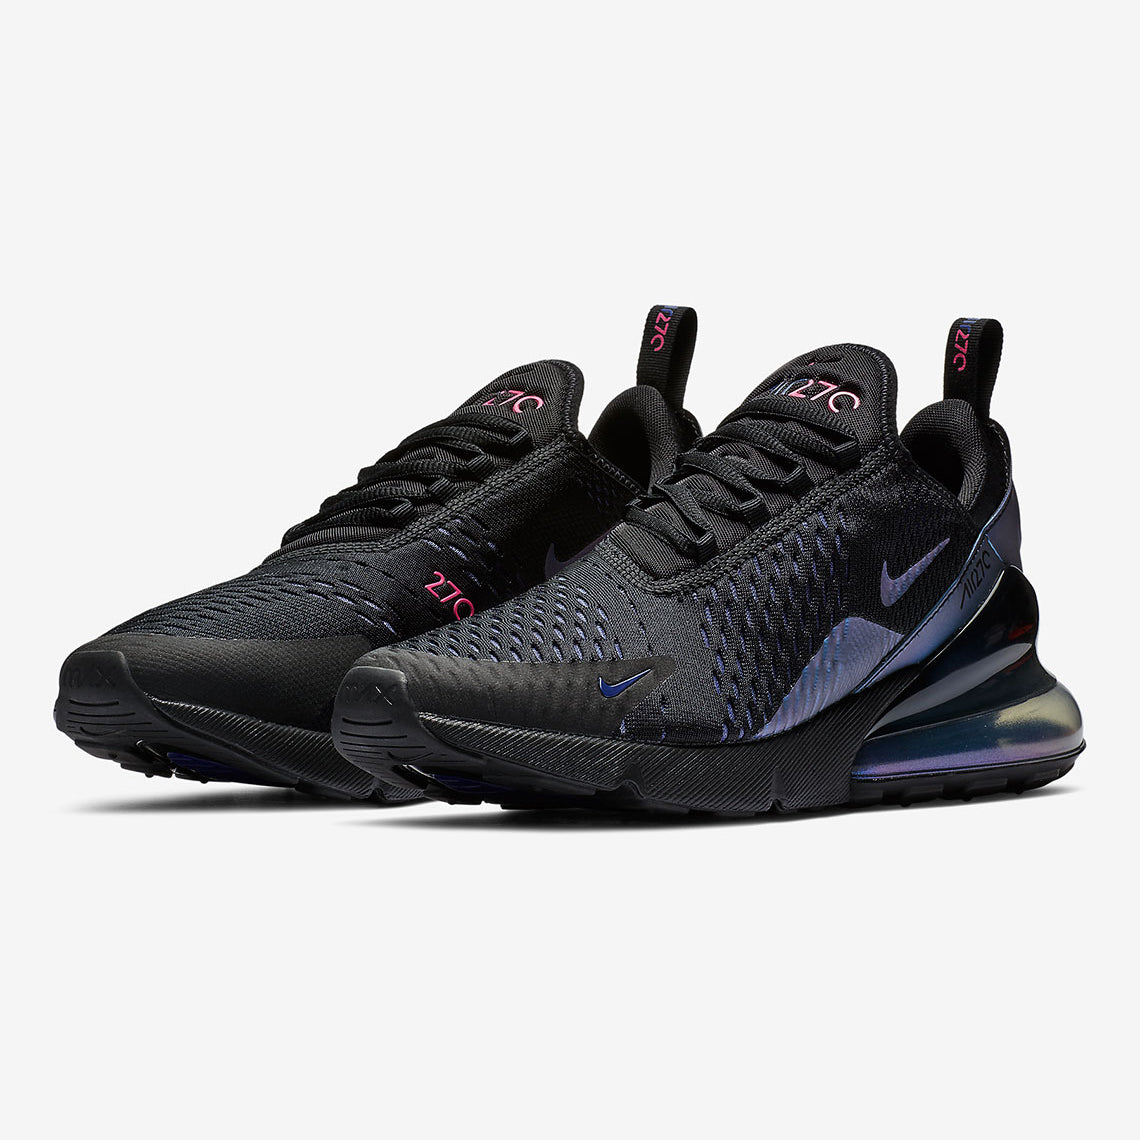 8f728bf906 Nike AIR MAX 270 (AH8050-020) THROWBACK FUTURE PACK (AH8050-020 ...